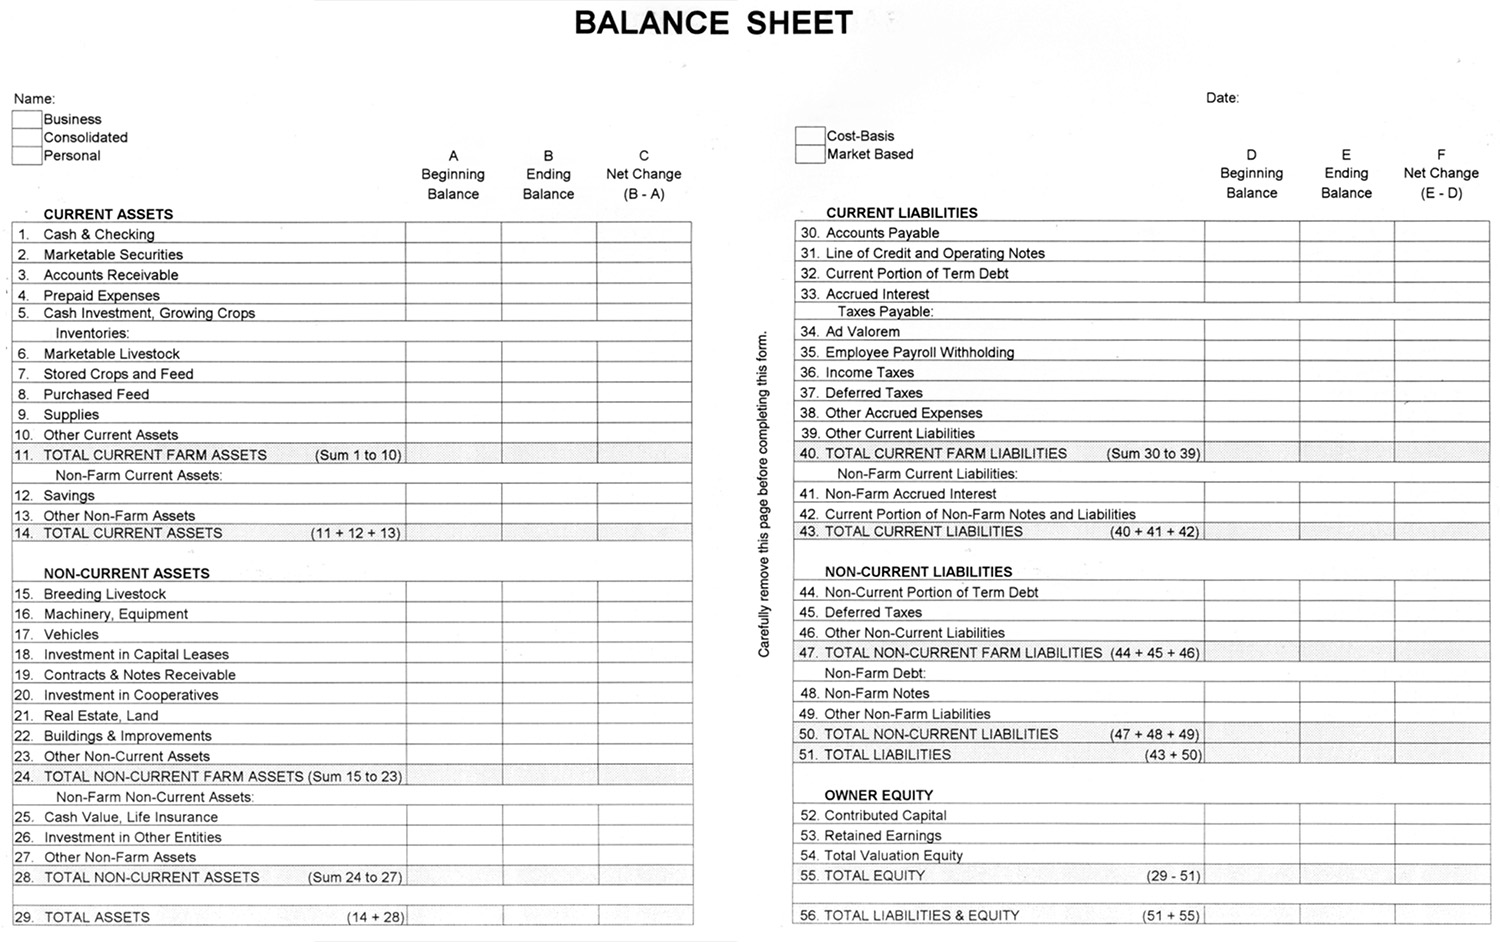 agec-752 developing a balance sheet » osu fact sheets